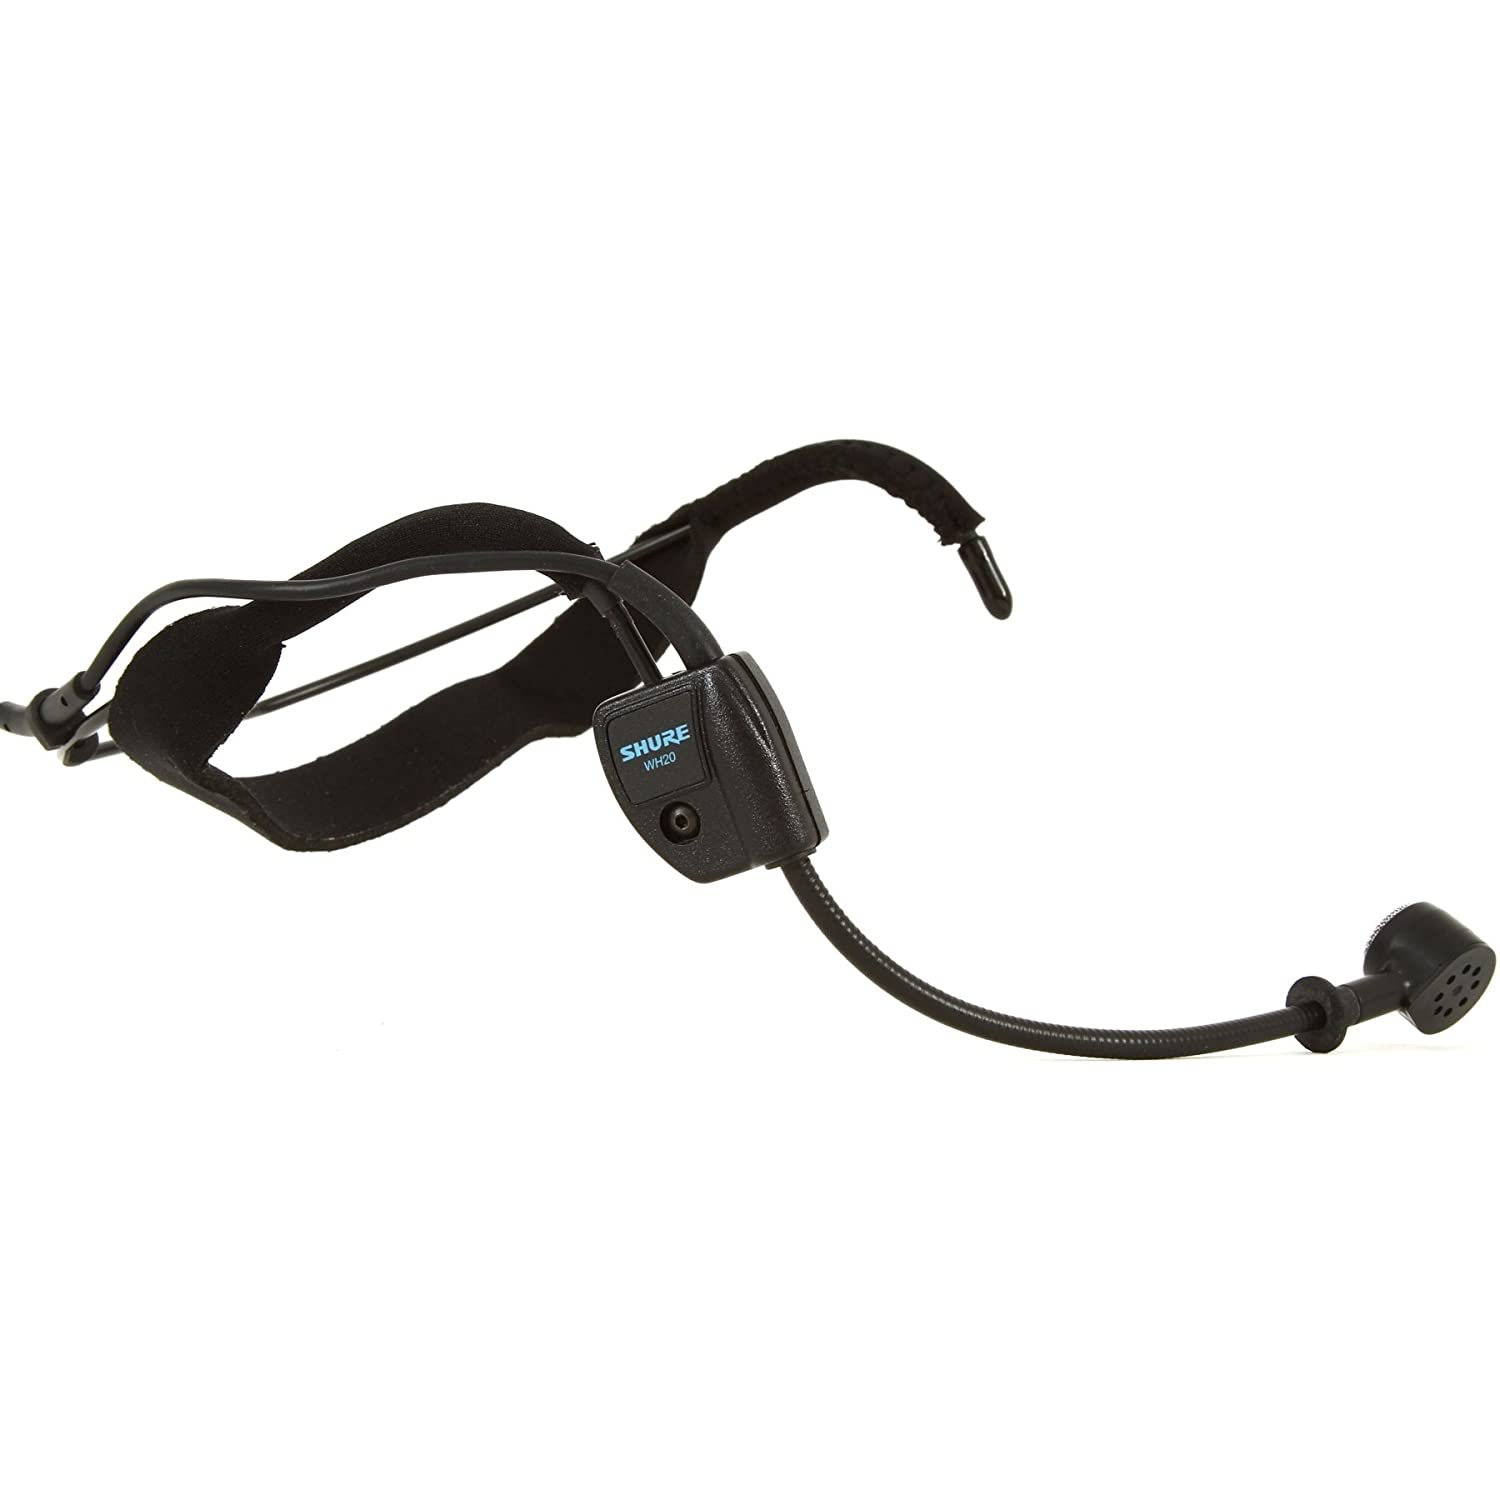 Shure Wh20qtr Dynamic Headset Microphone Includes Trs Headphone Cable Wiring Diagram Free Image About Right Angle 1 4 Phone Plug For Unbalanced Mic Input Musical Instruments